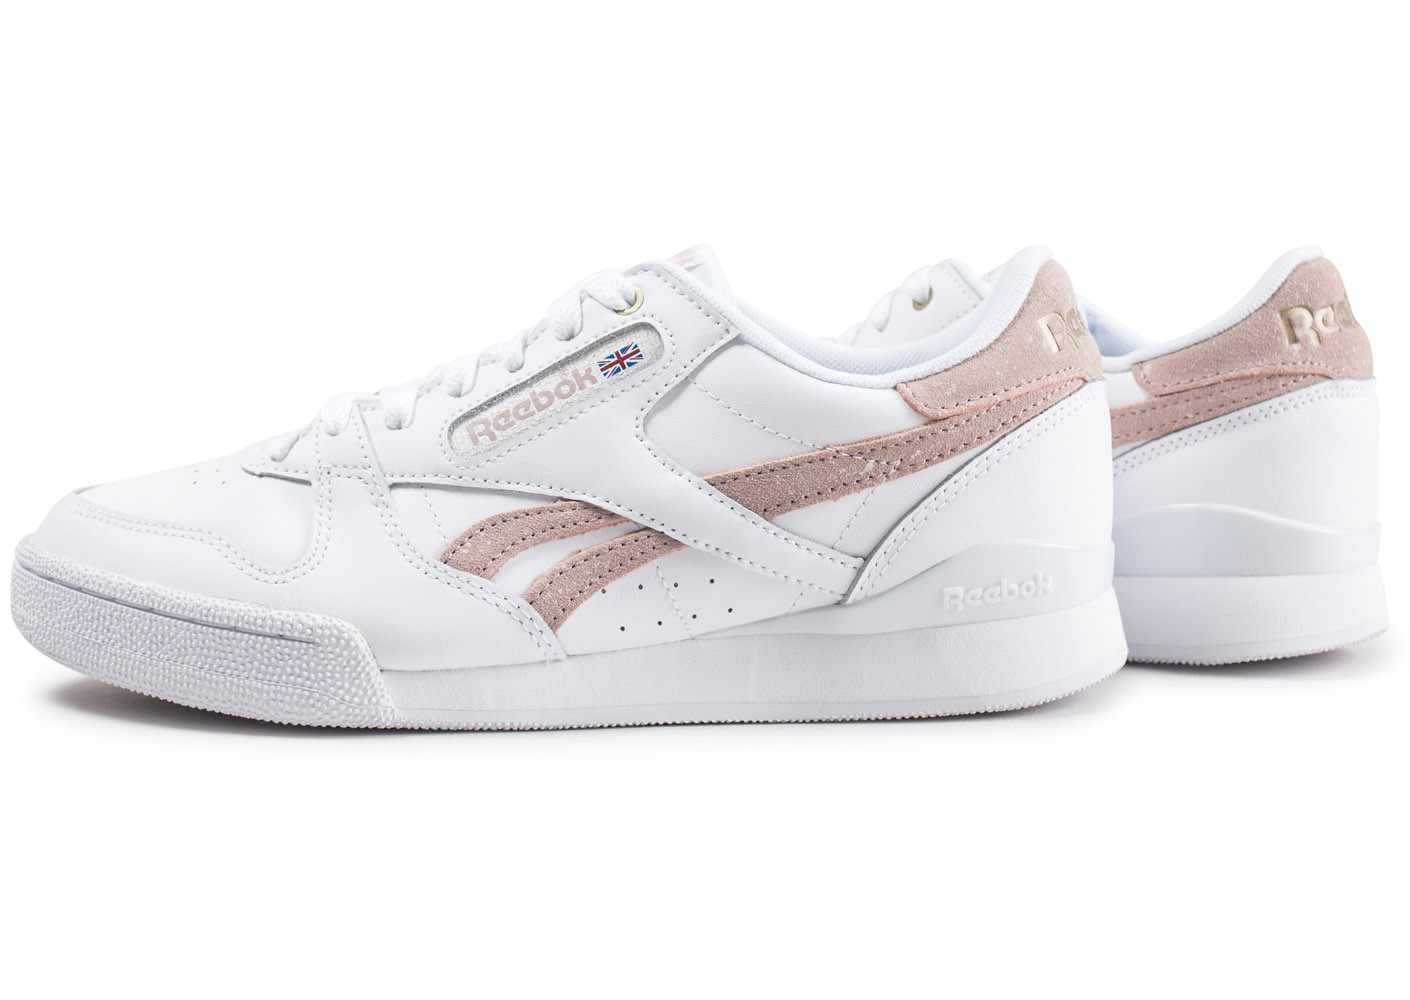 Reebok Phase 1 Pro X Montana Cans blanche et rose